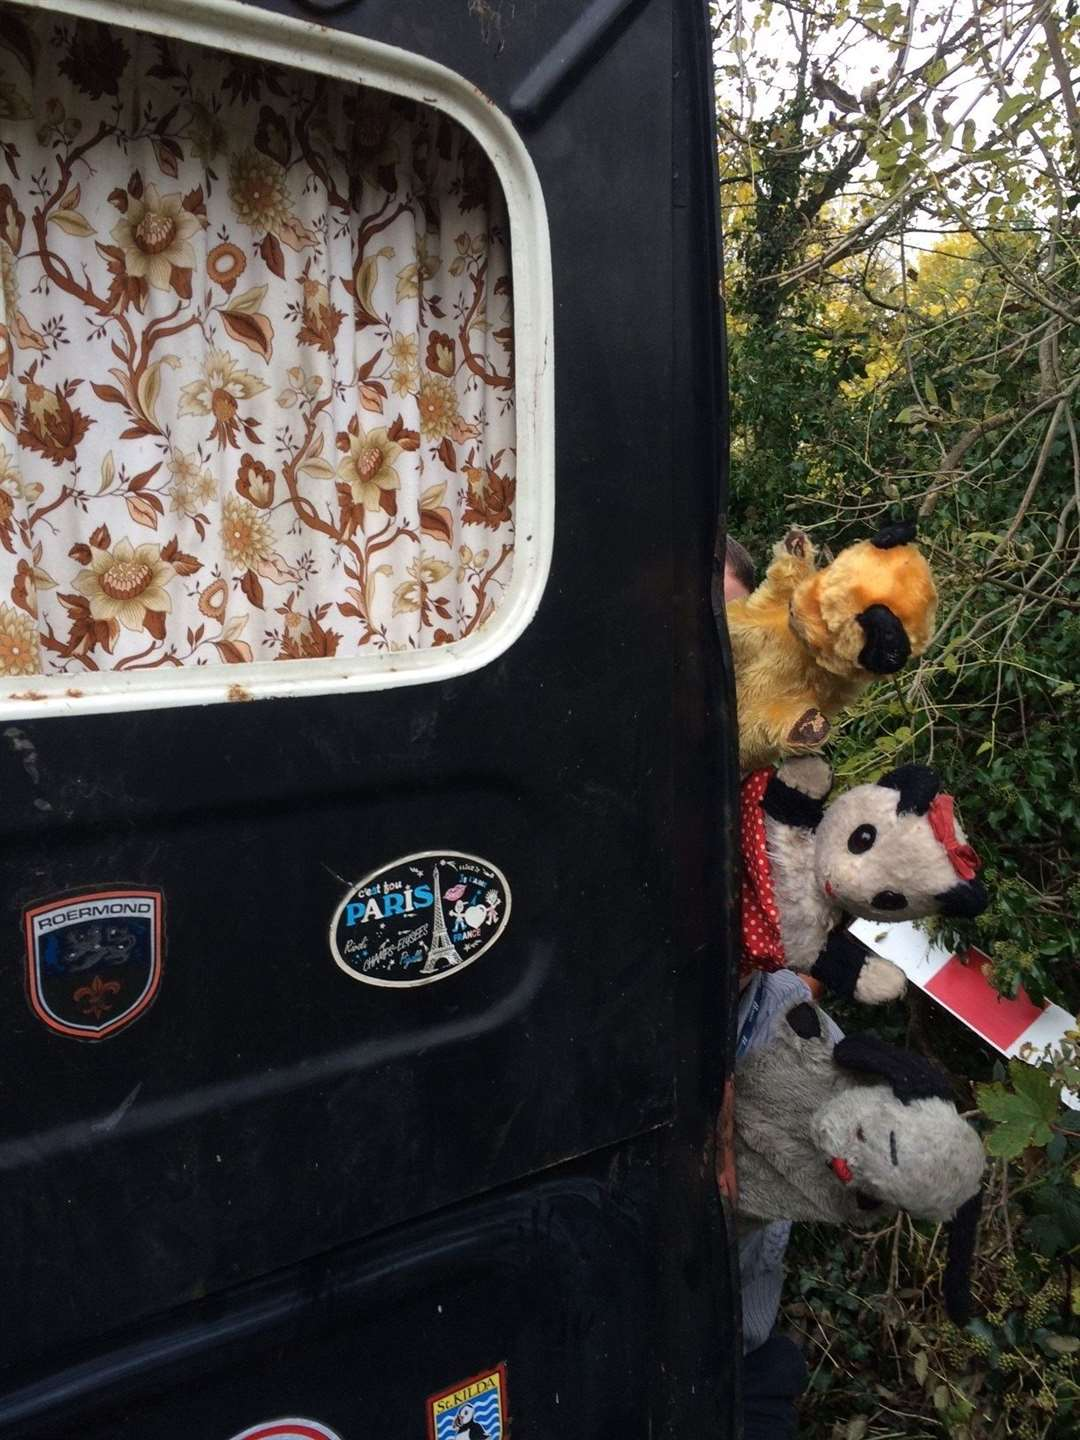 Sooty's TV Mobile goes under the hammer for more than £1,000 (22196678)